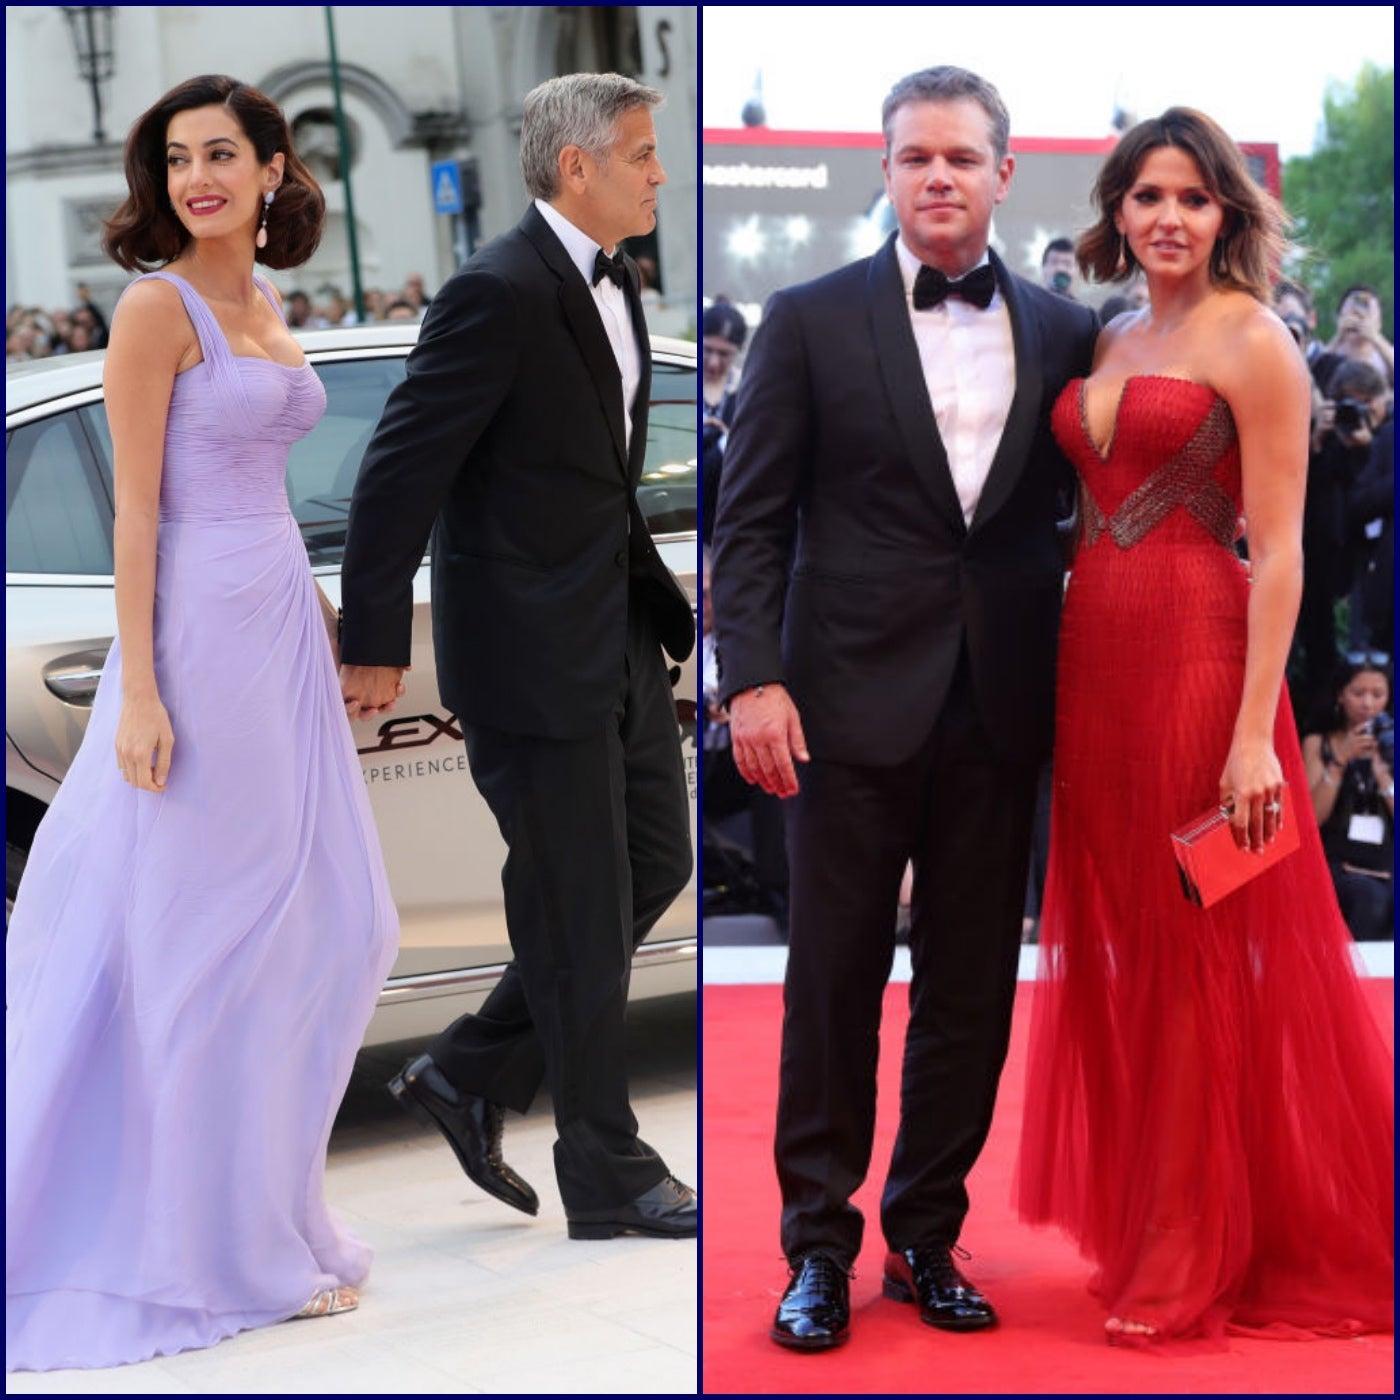 George and Amal Clooney, Matt Damon and Luciana Barroso